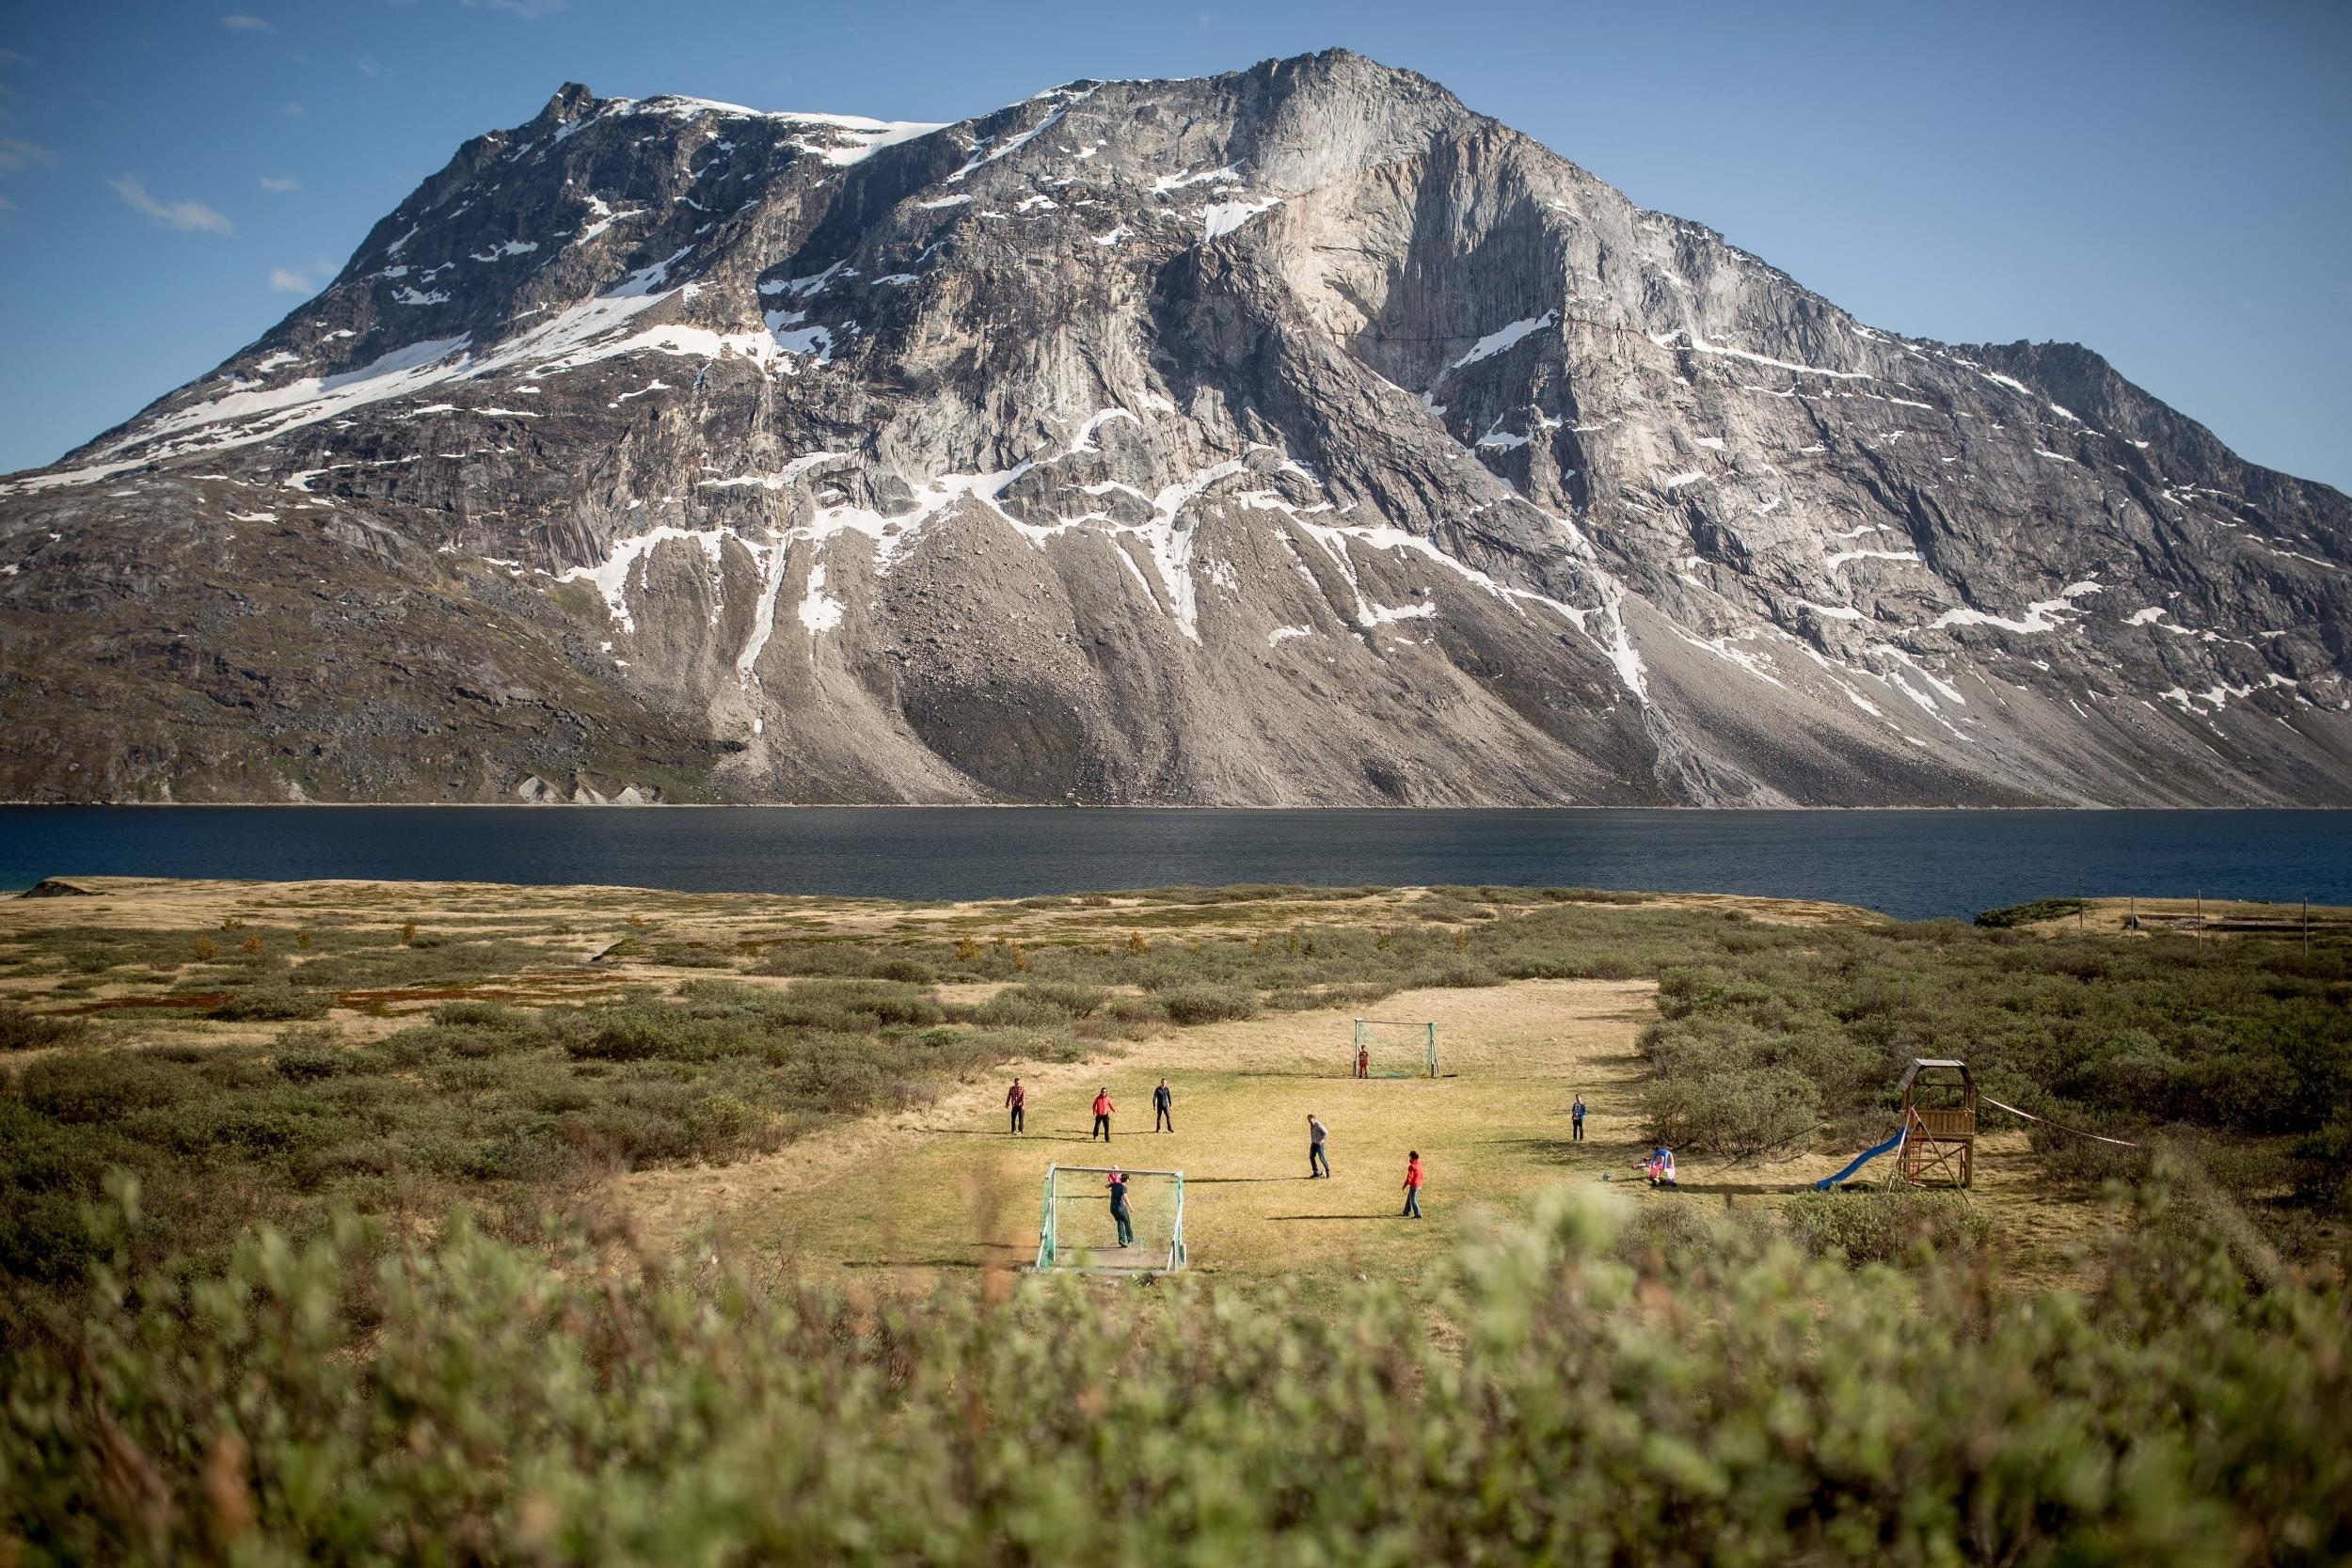 The backcountry soccer or football field at Qooqqut in the fjord near Nuuk in Greenland. Photo by Mads Pihl.jpg